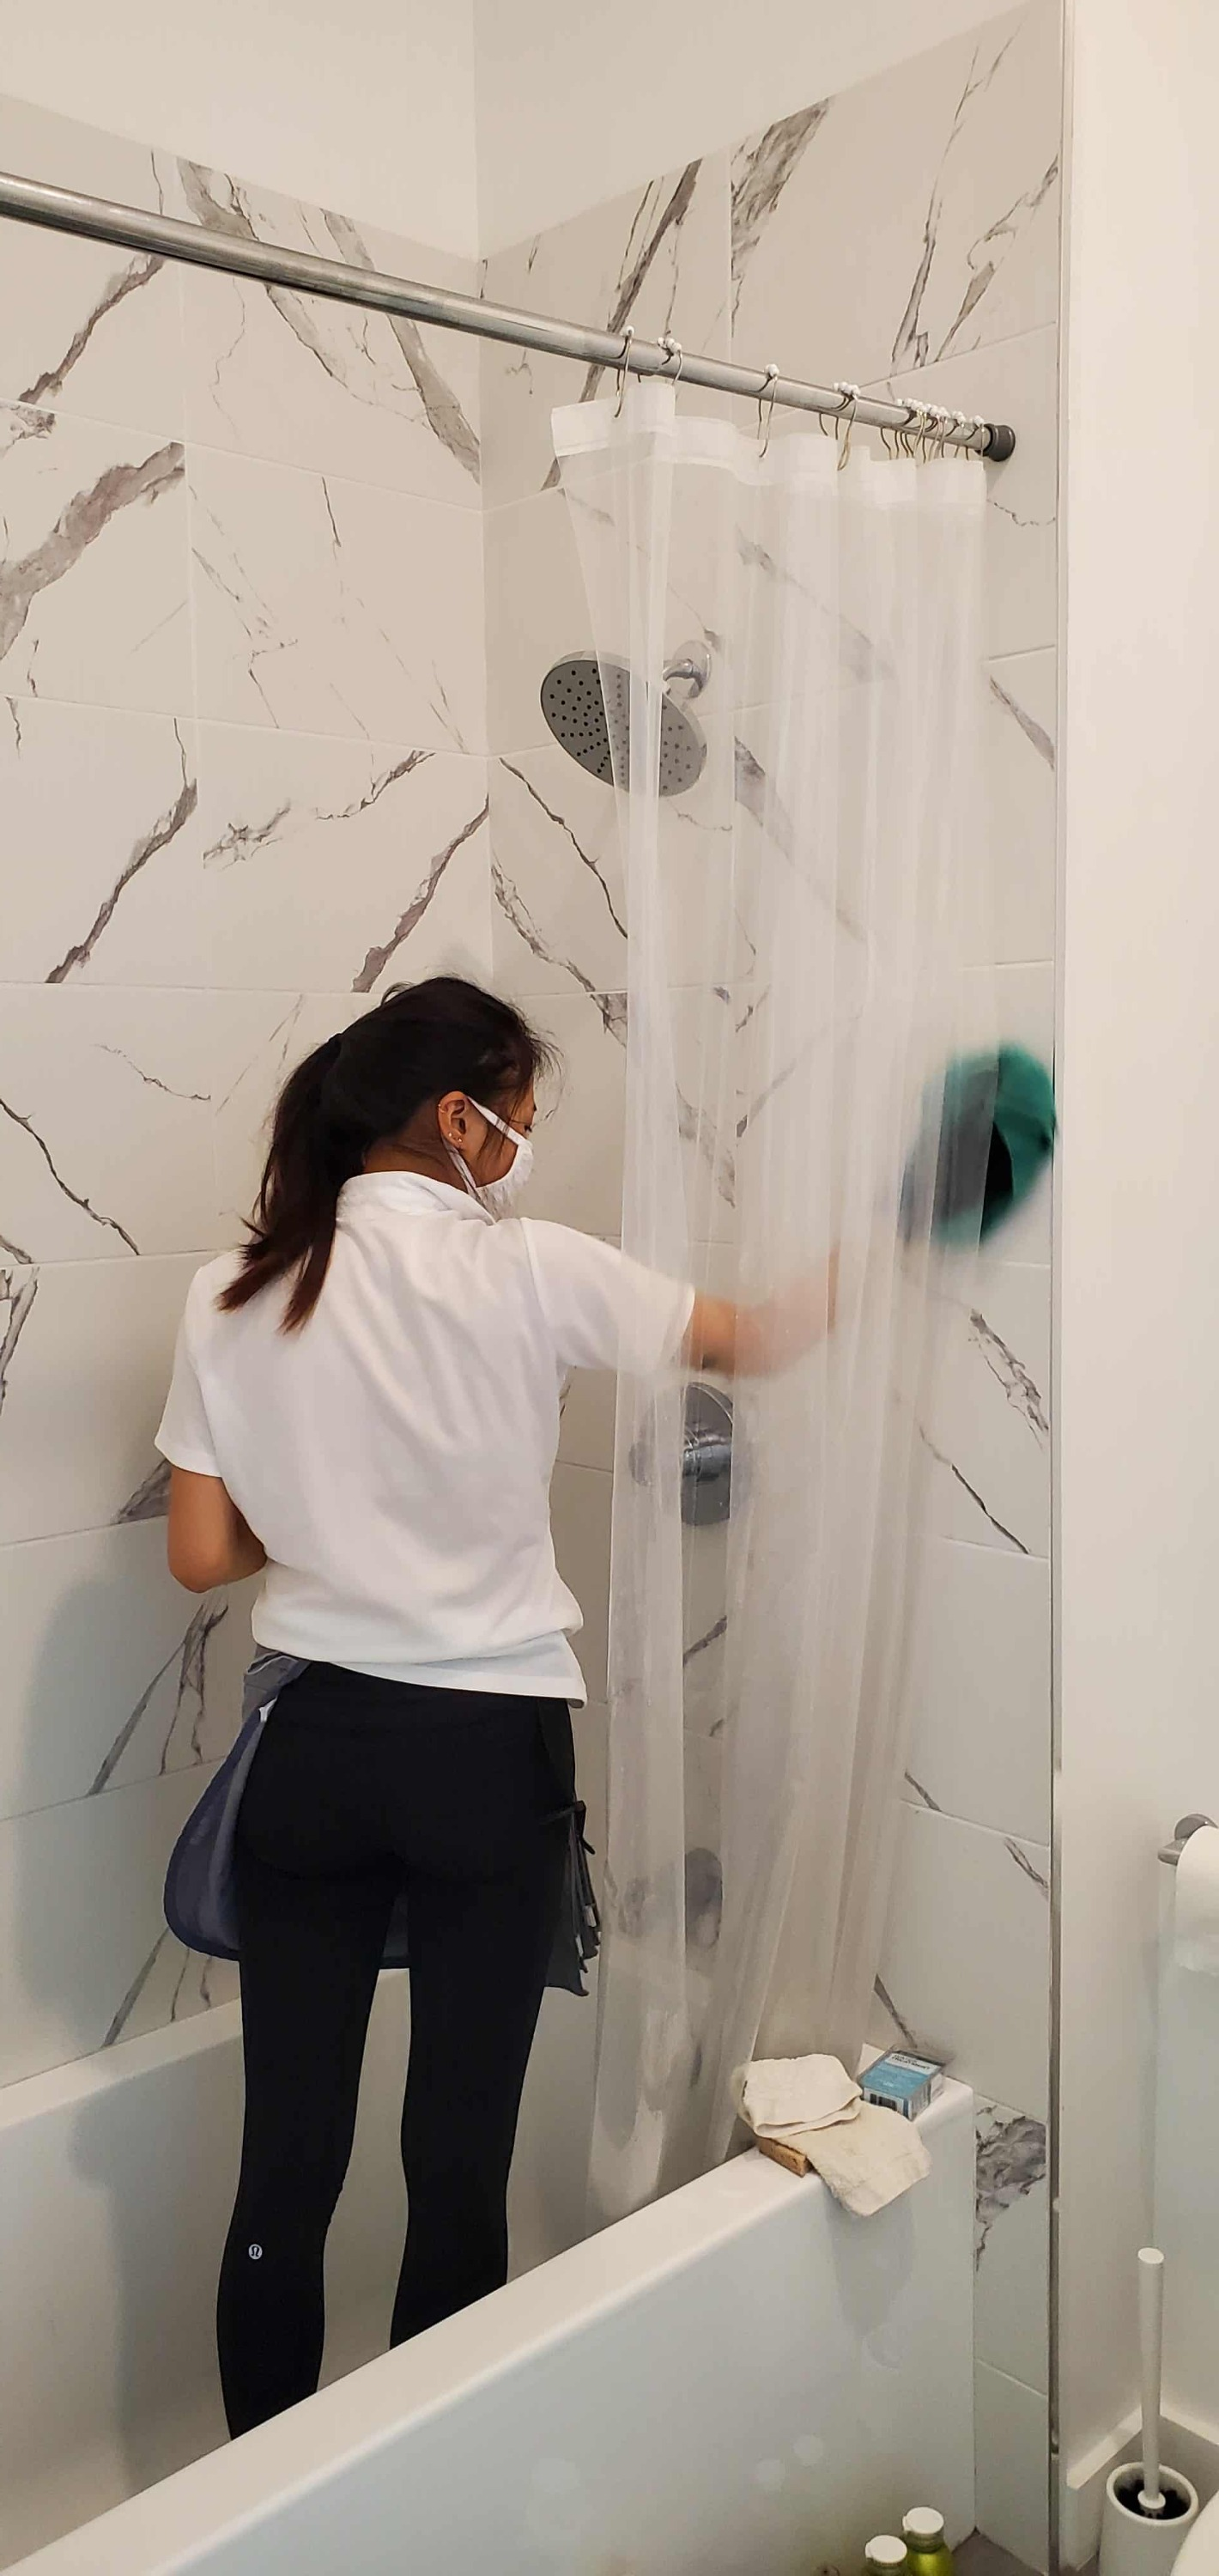 woman cleaner cleaning the tile in on shower wall in a bathroom